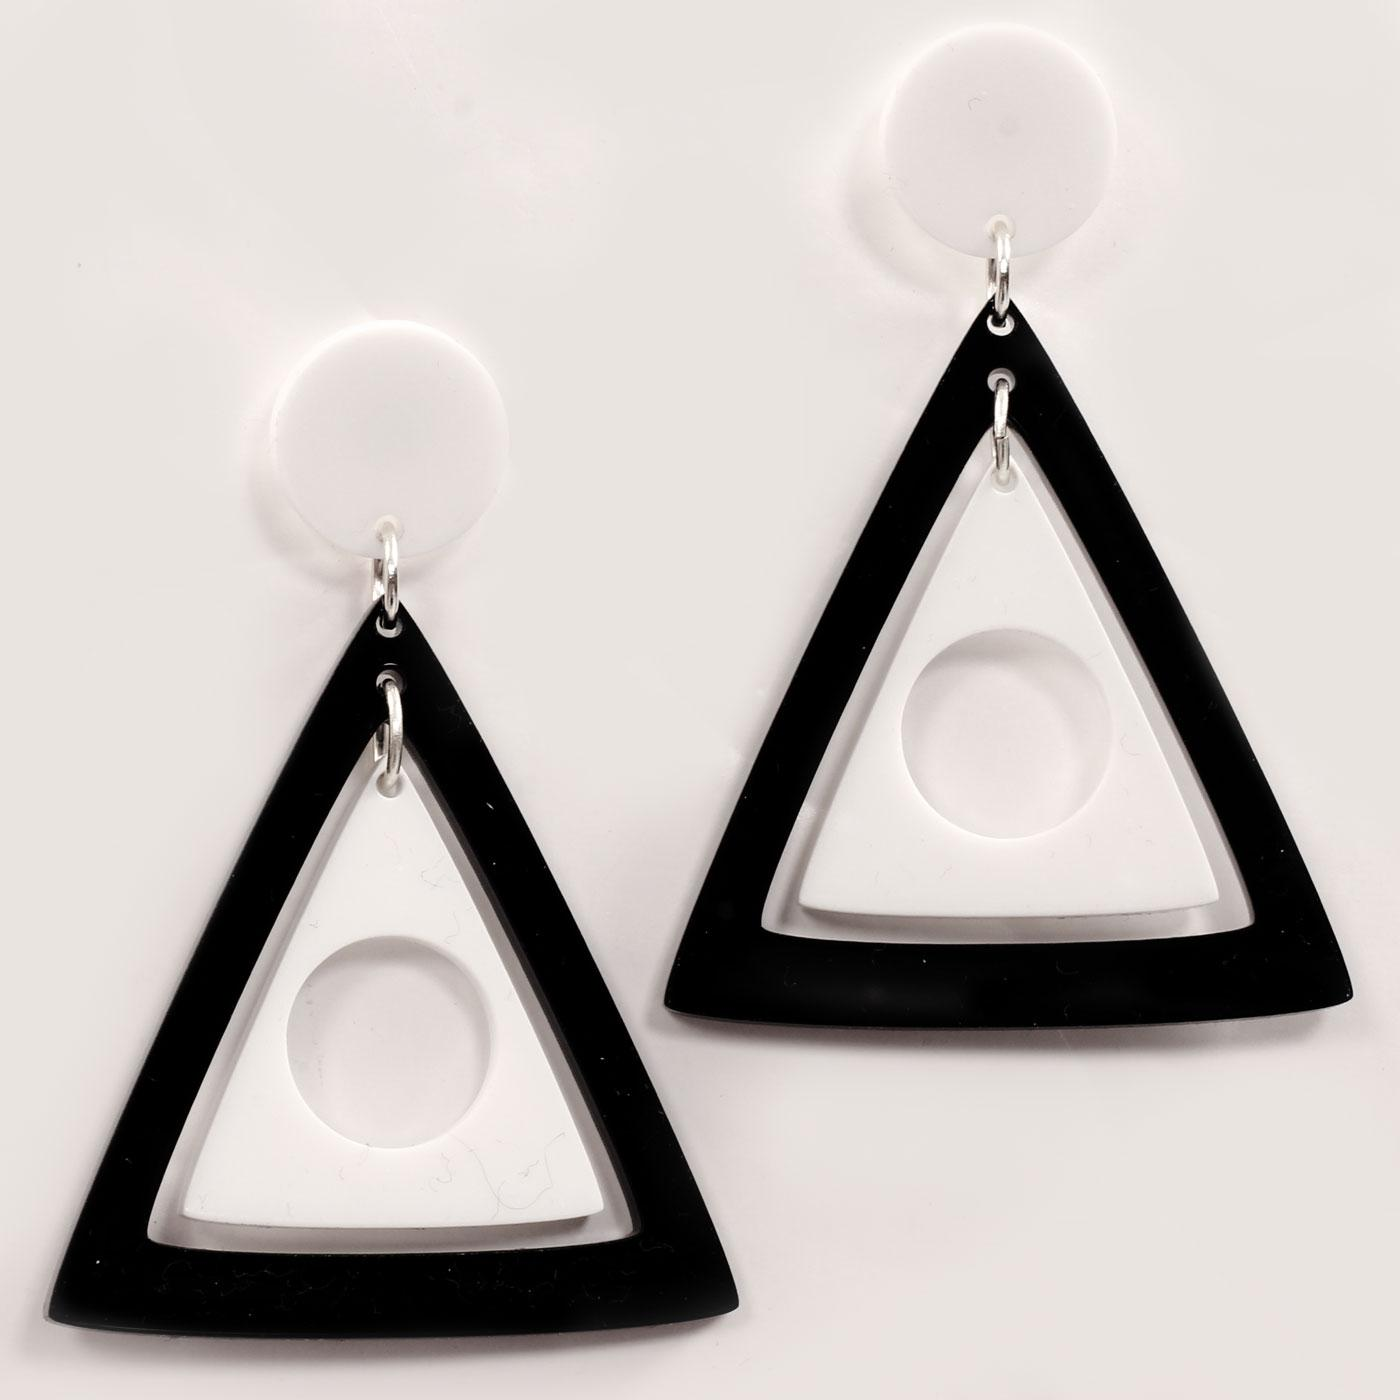 Ada Binks for Madcap England 60s Mod Concentric Triangles Earrings in Black